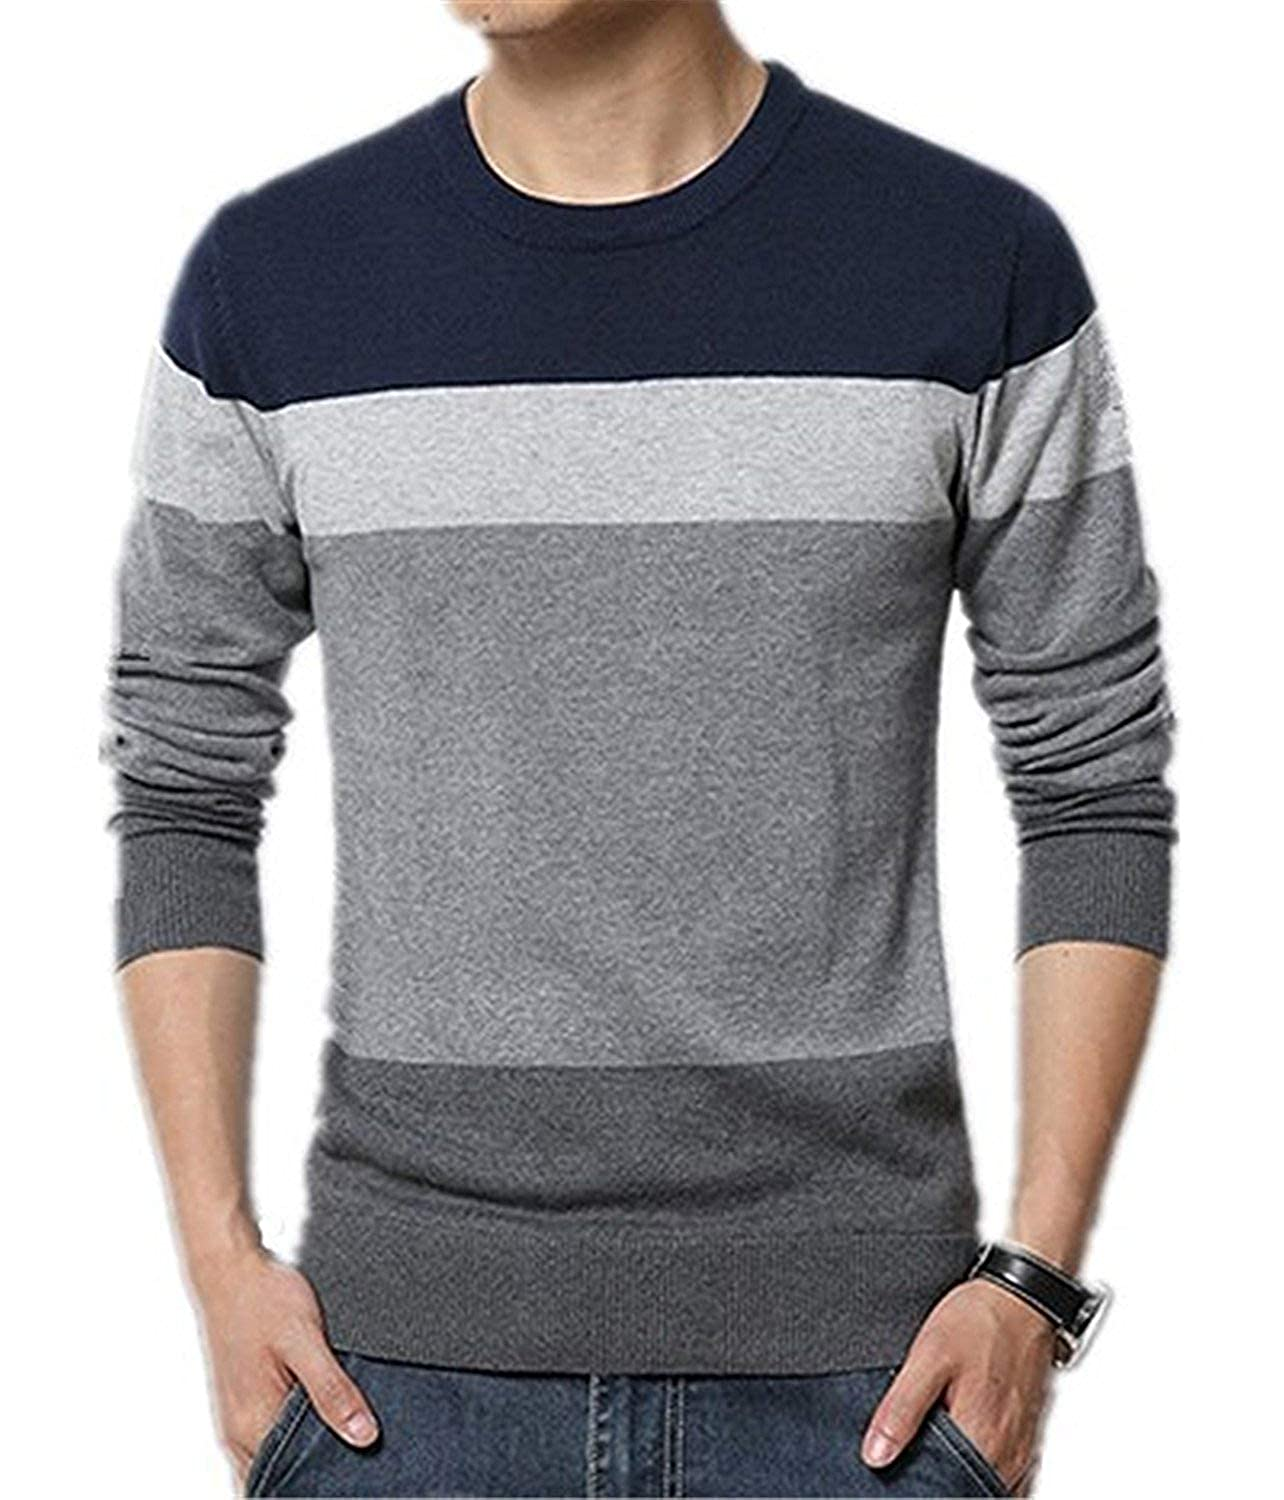 Onin Autumn Sweater O-Neck Striped Slim Fit Knitting Mens Sweaters and Pullovers M-5XL